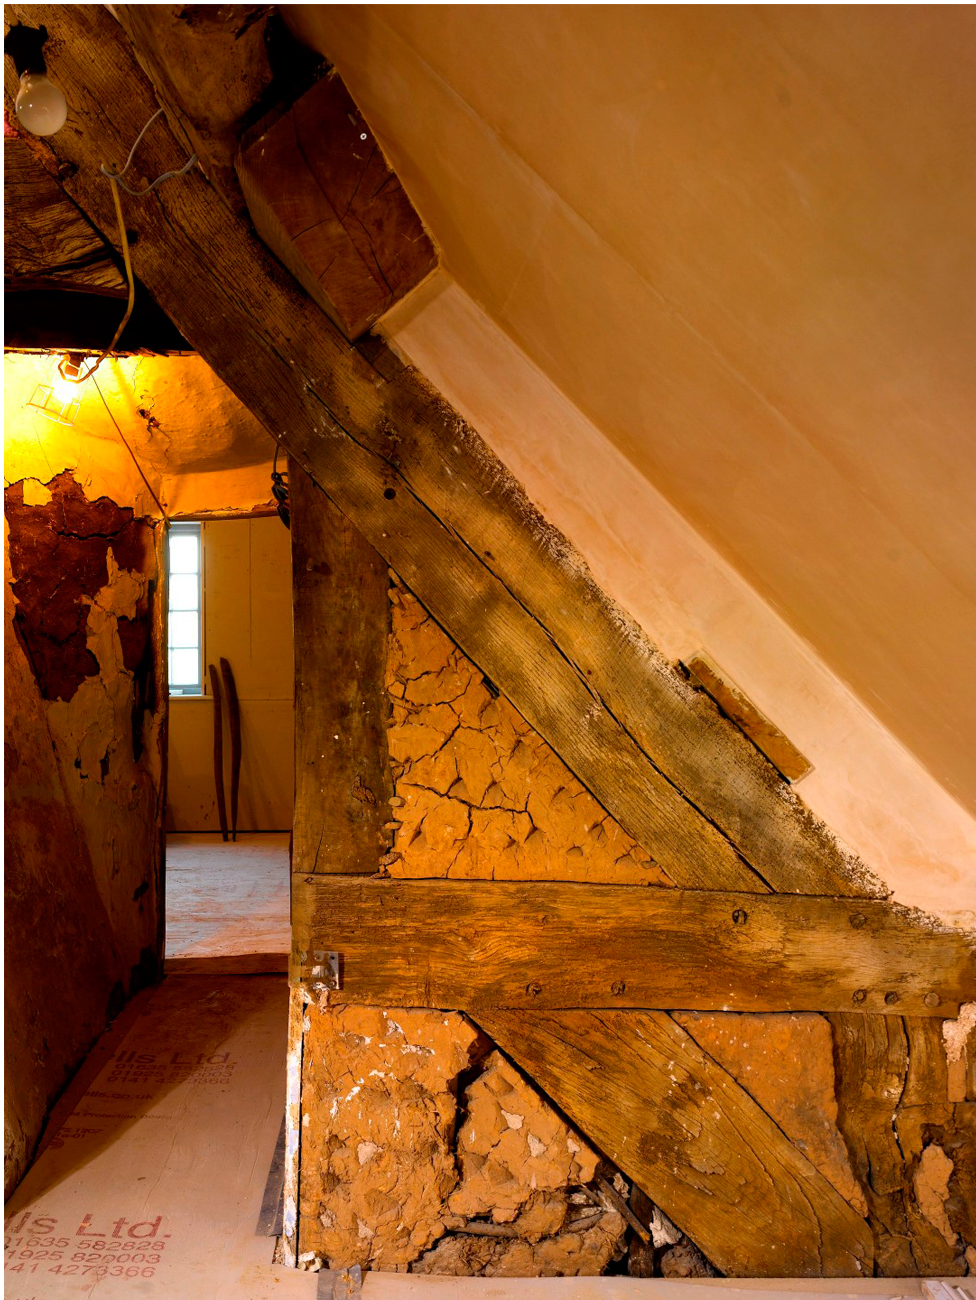 Plasterwork - sympathetic preservation of historic fabric